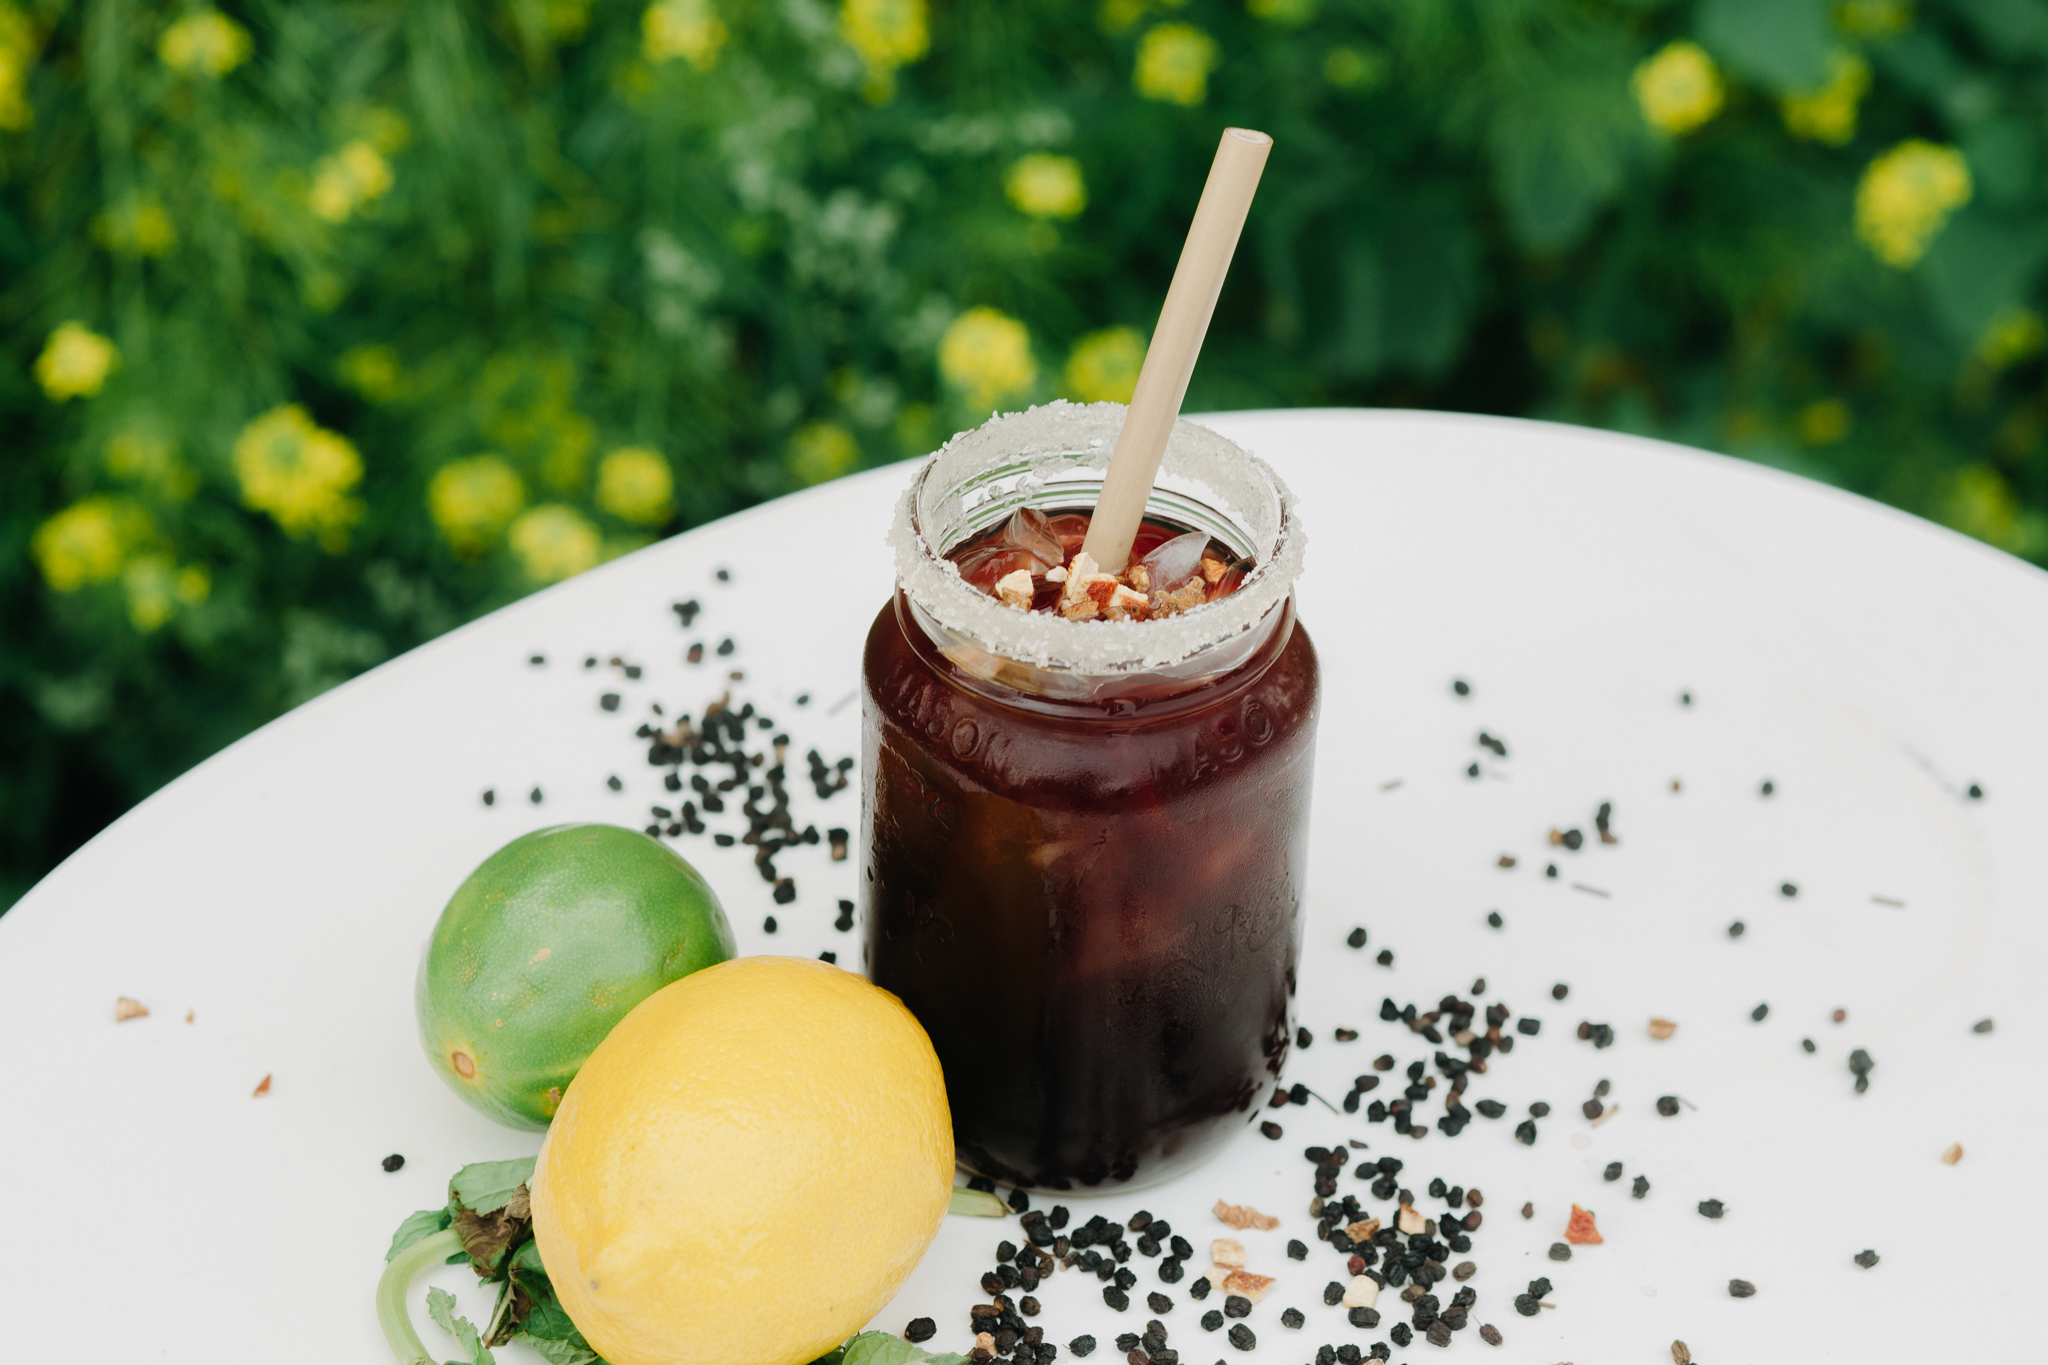 This twist on a classic cocktail sour features Pineapple Iced Tea Kombucha from Wild Tea Kombucha.